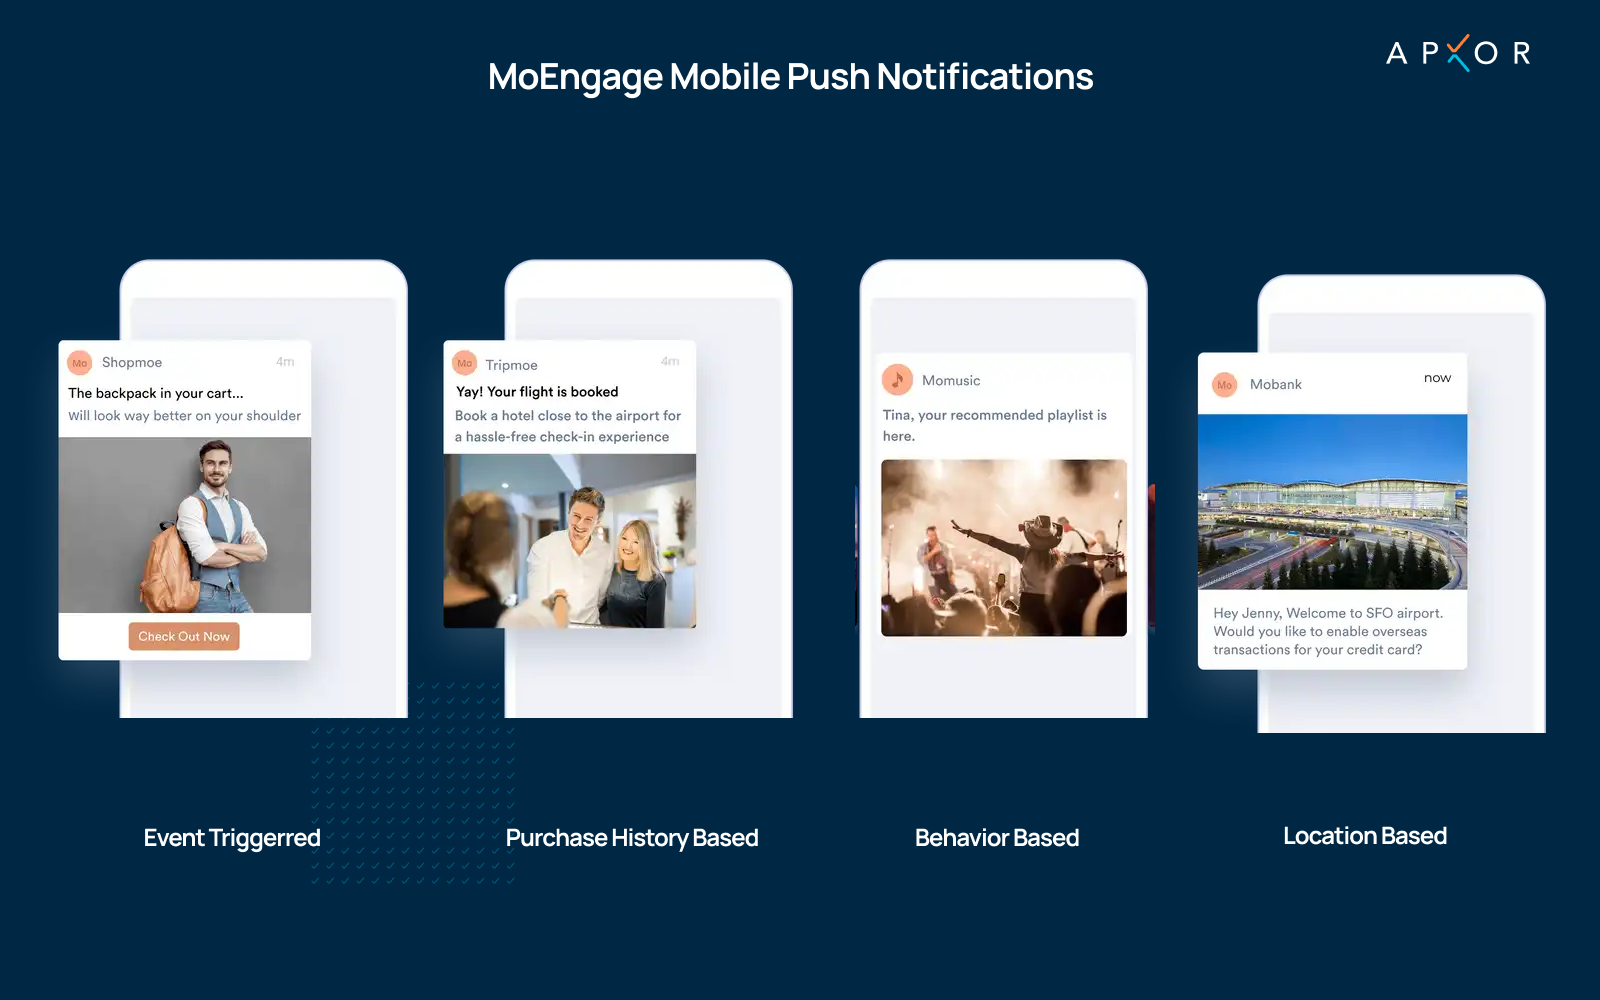 MoEngage's Mobile Push Notifications - Apxor